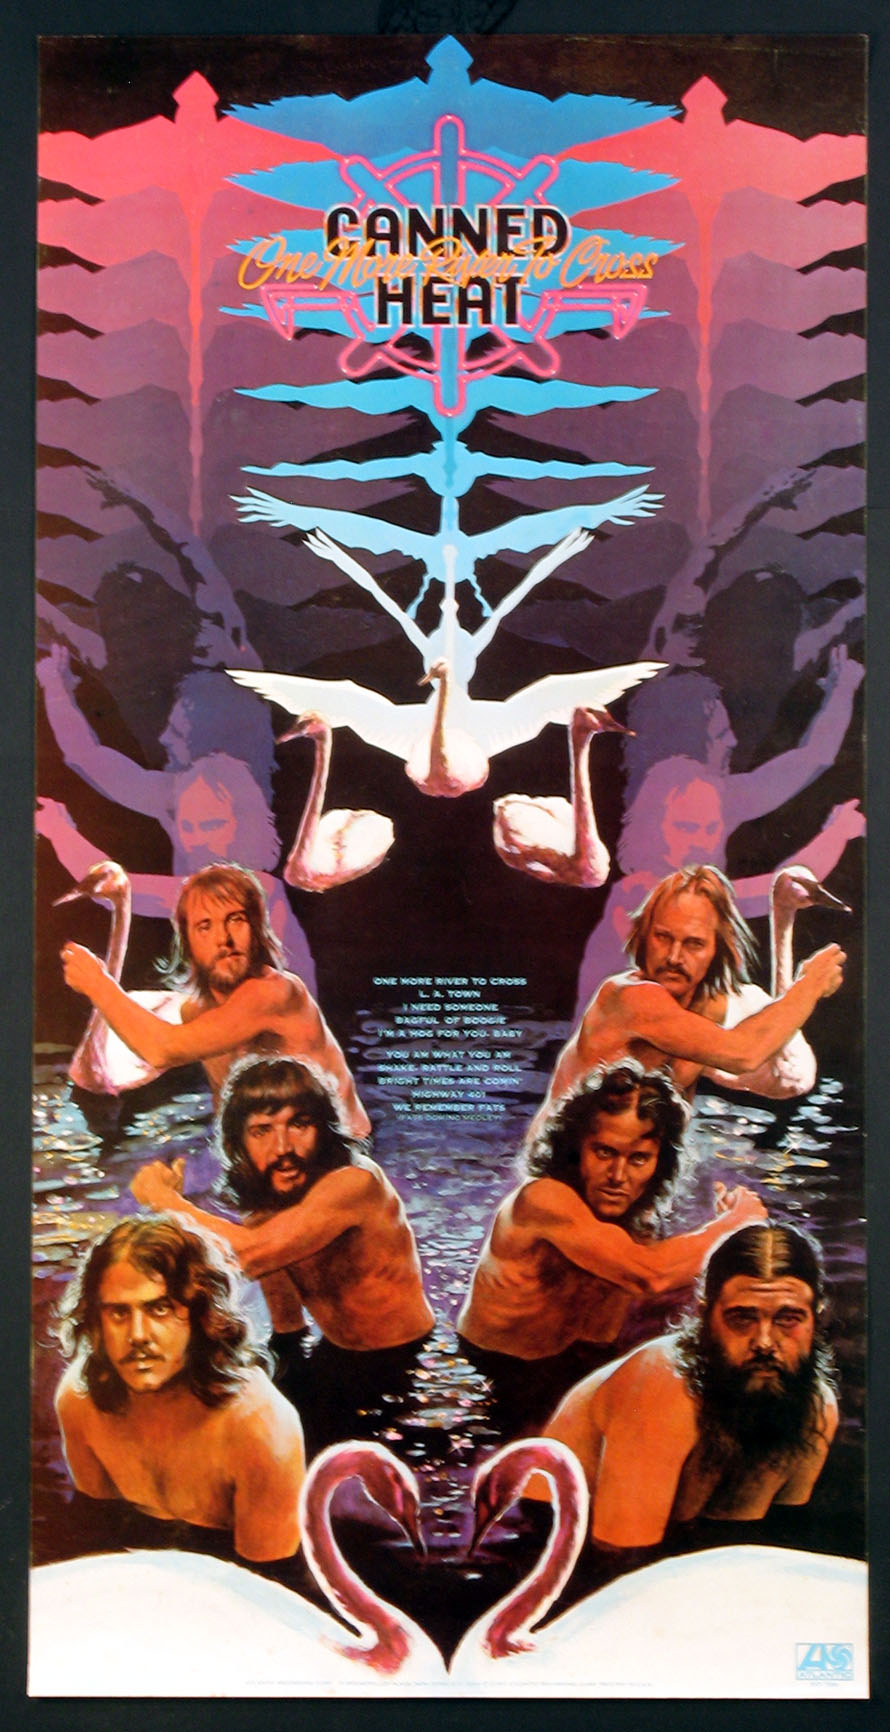 CANNED HEAT ONE MORE RIVER TO CROSS ORIGINAL PROMOTIONAL POSTER @ FilmPosters.com